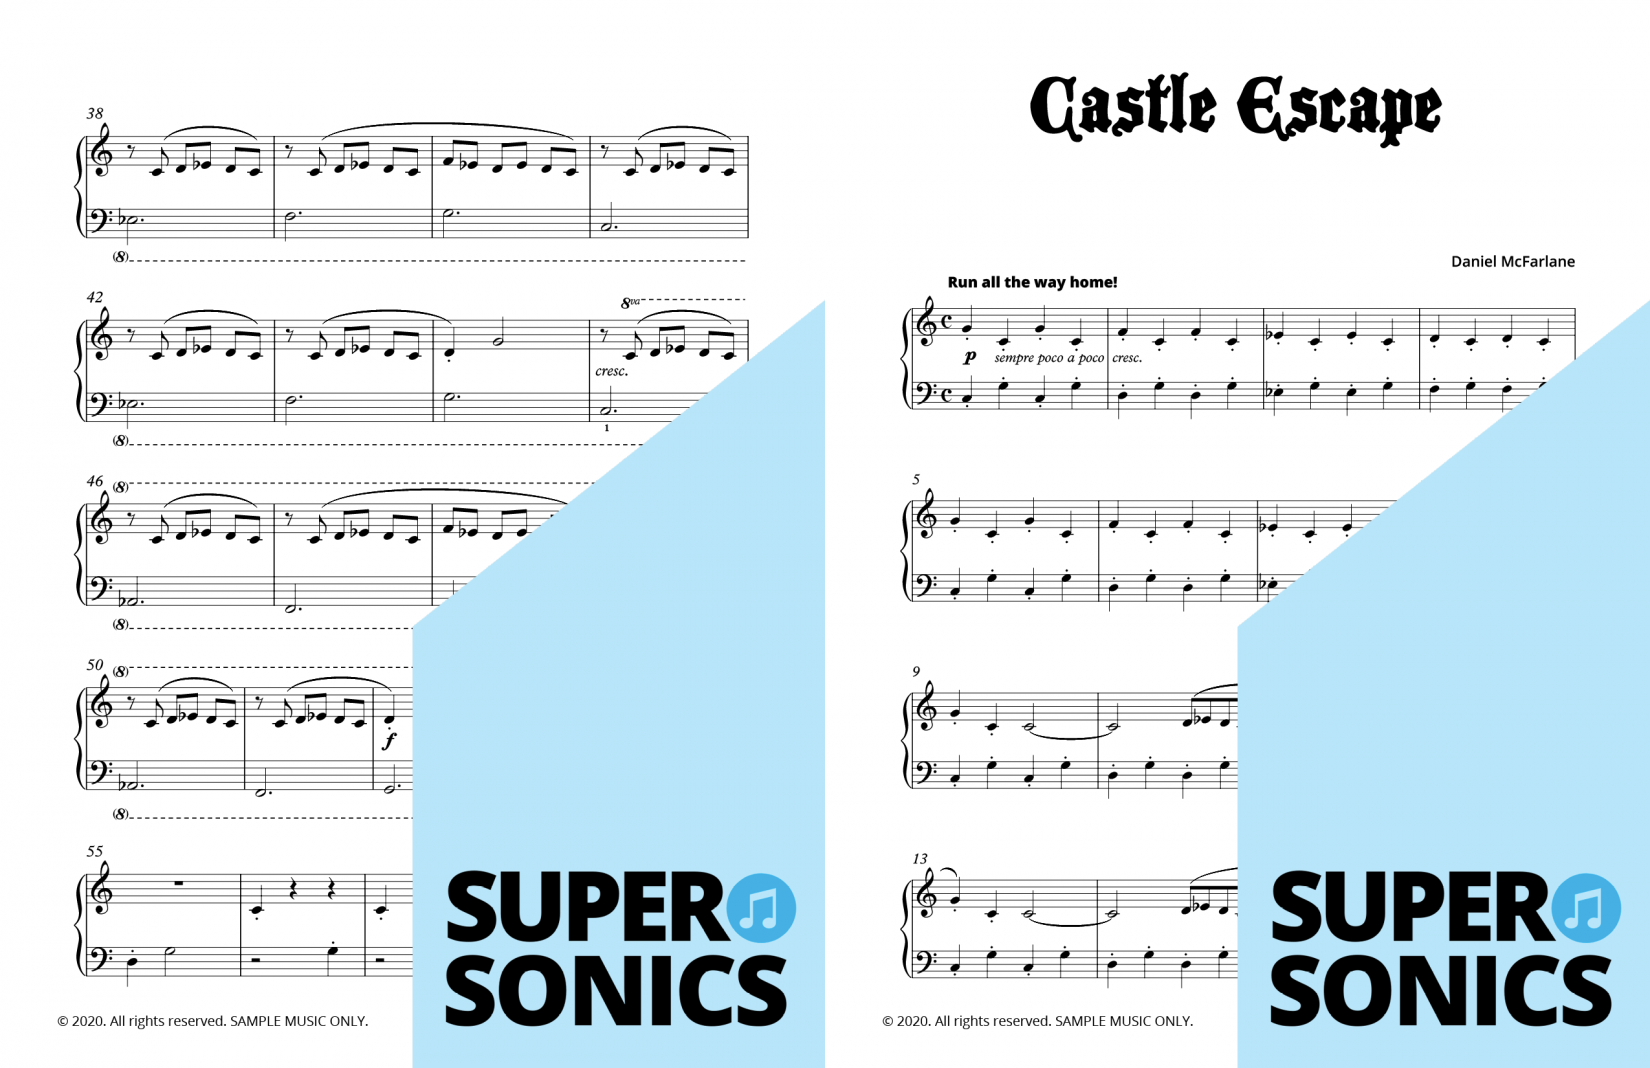 Supersonics Piano Castle Escape 1 sample